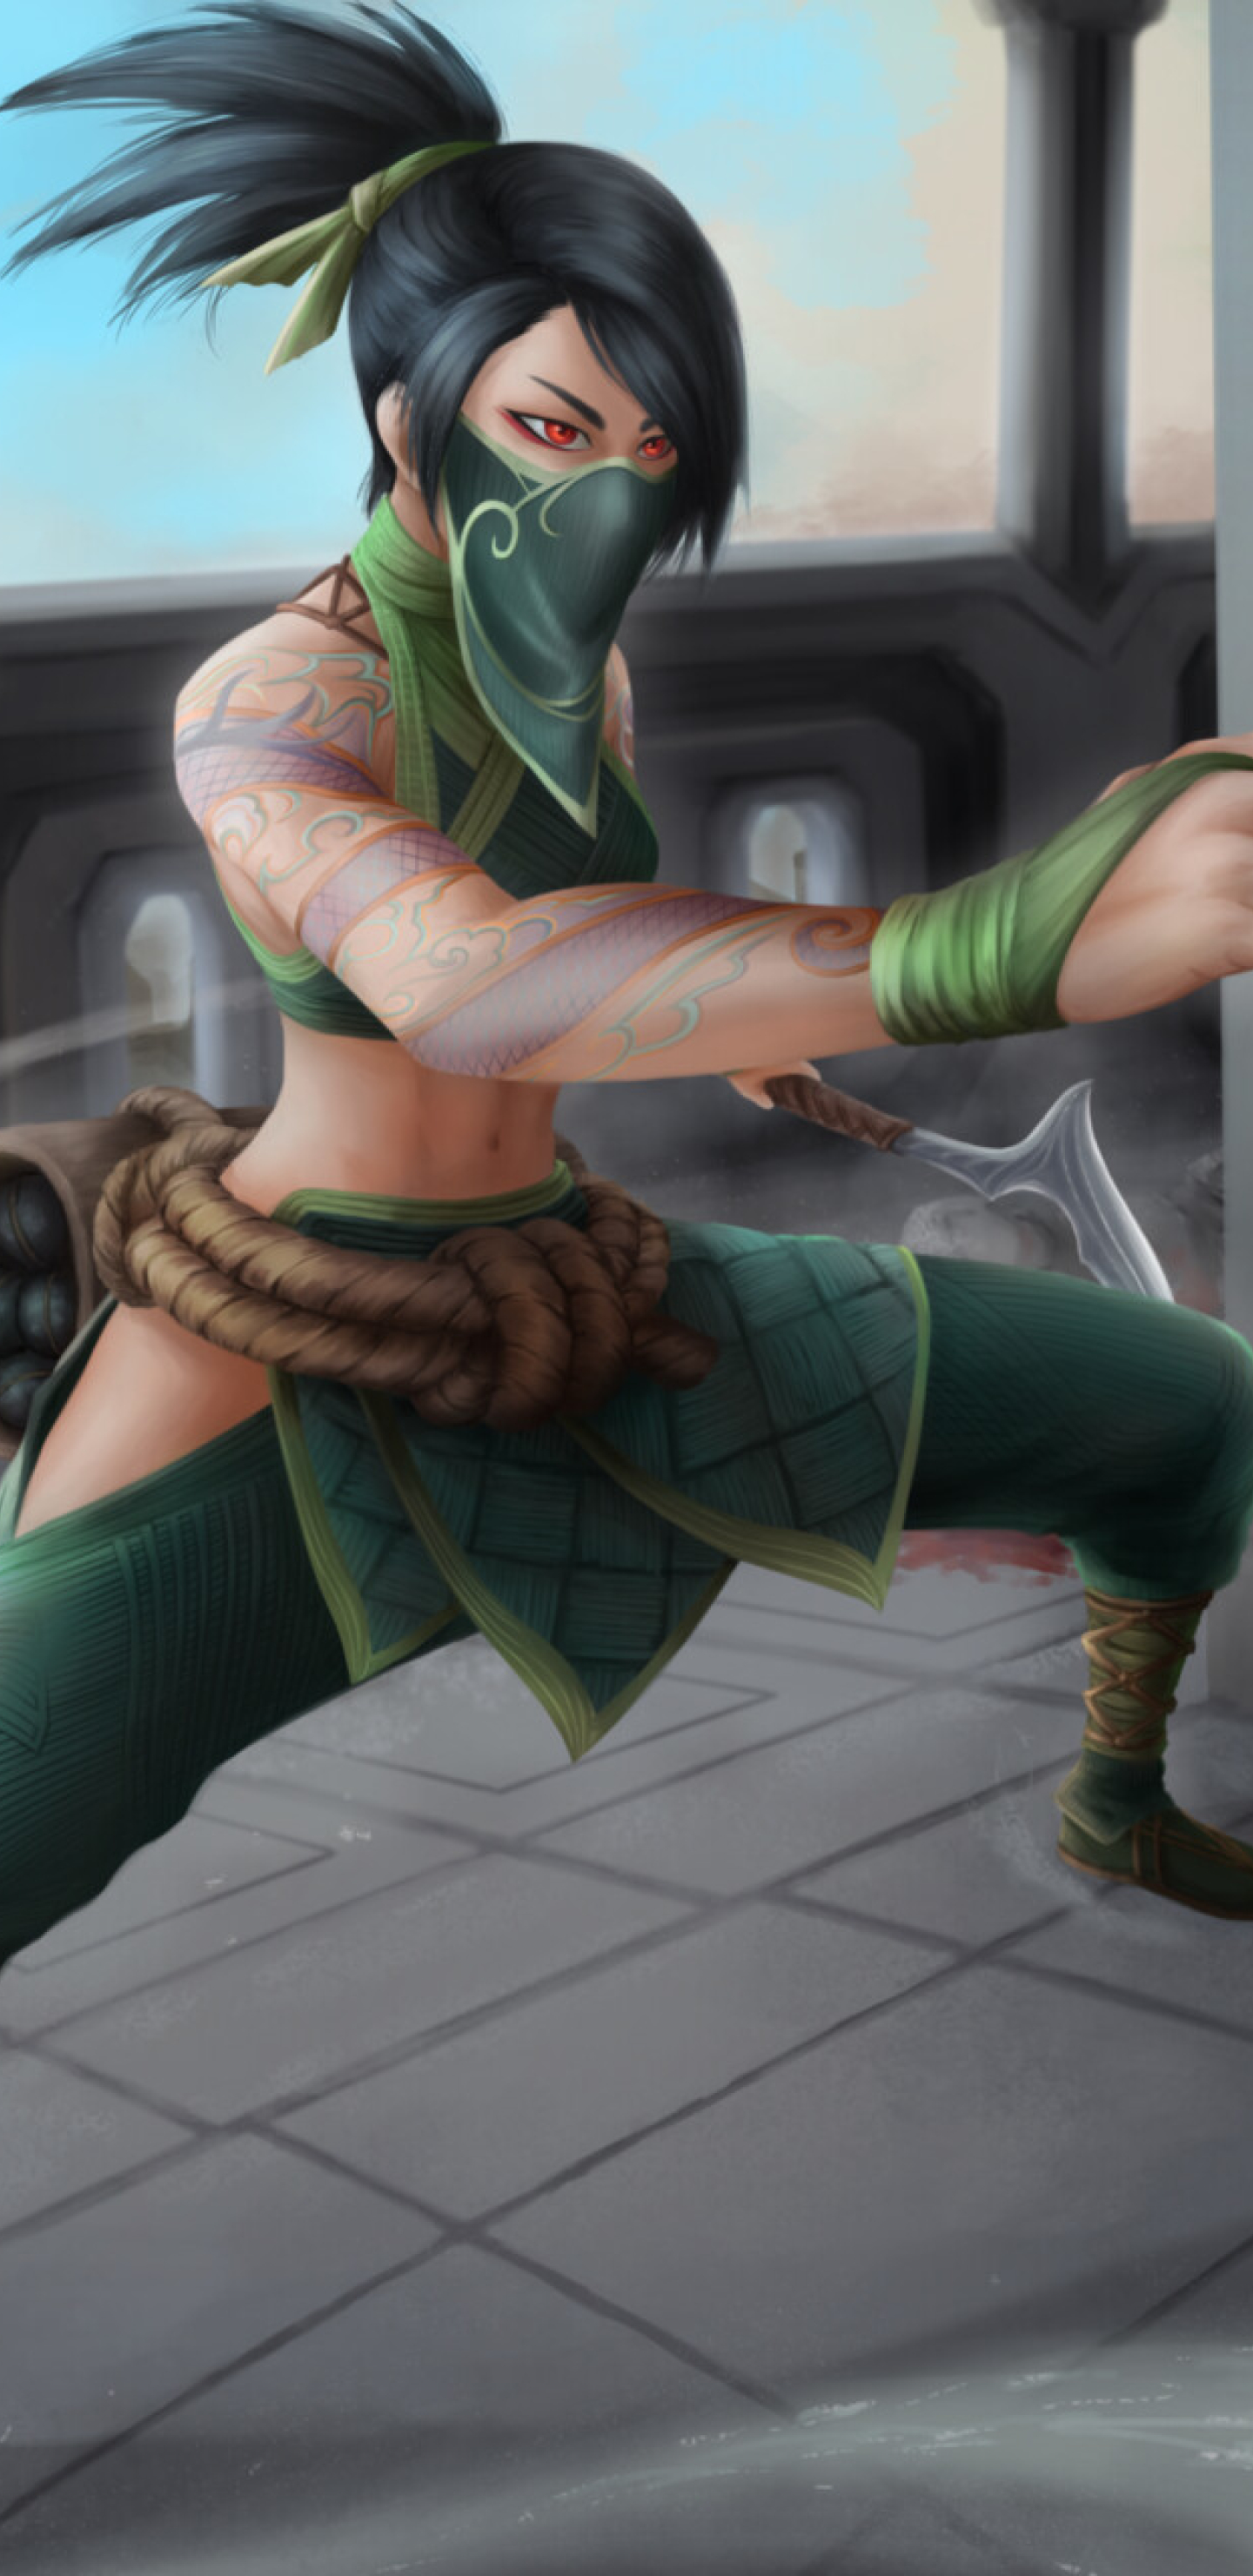 Akali from League Of Legends Wallpaper in 1440x2960 Resolution